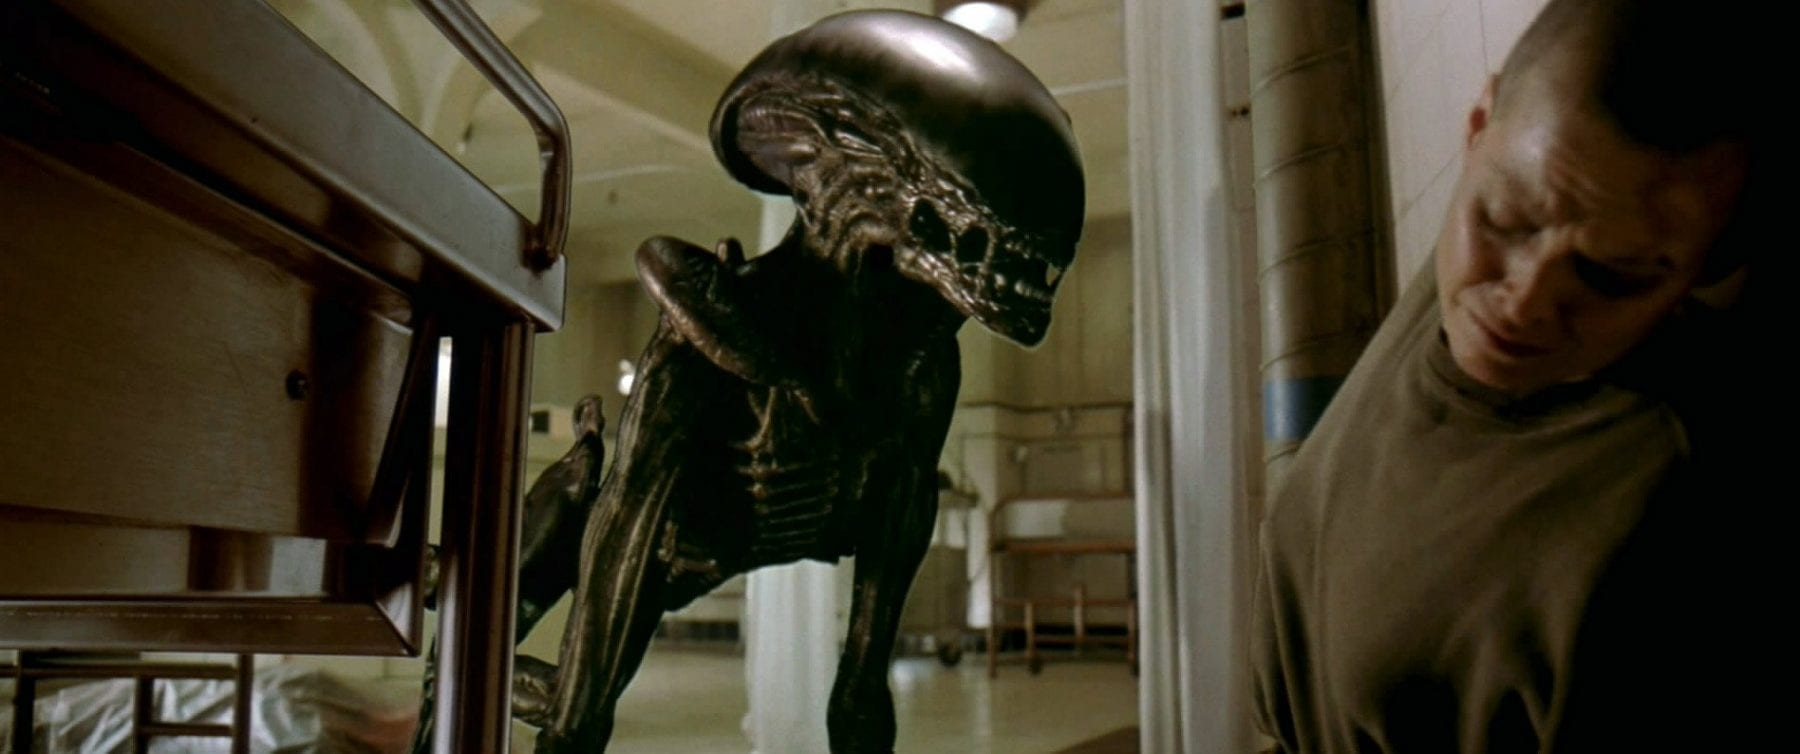 H.R. Giger's new design was more animalistic. Here, as it attacks Ripley, xenomorph. ou can see that it is a brand new kind of xe